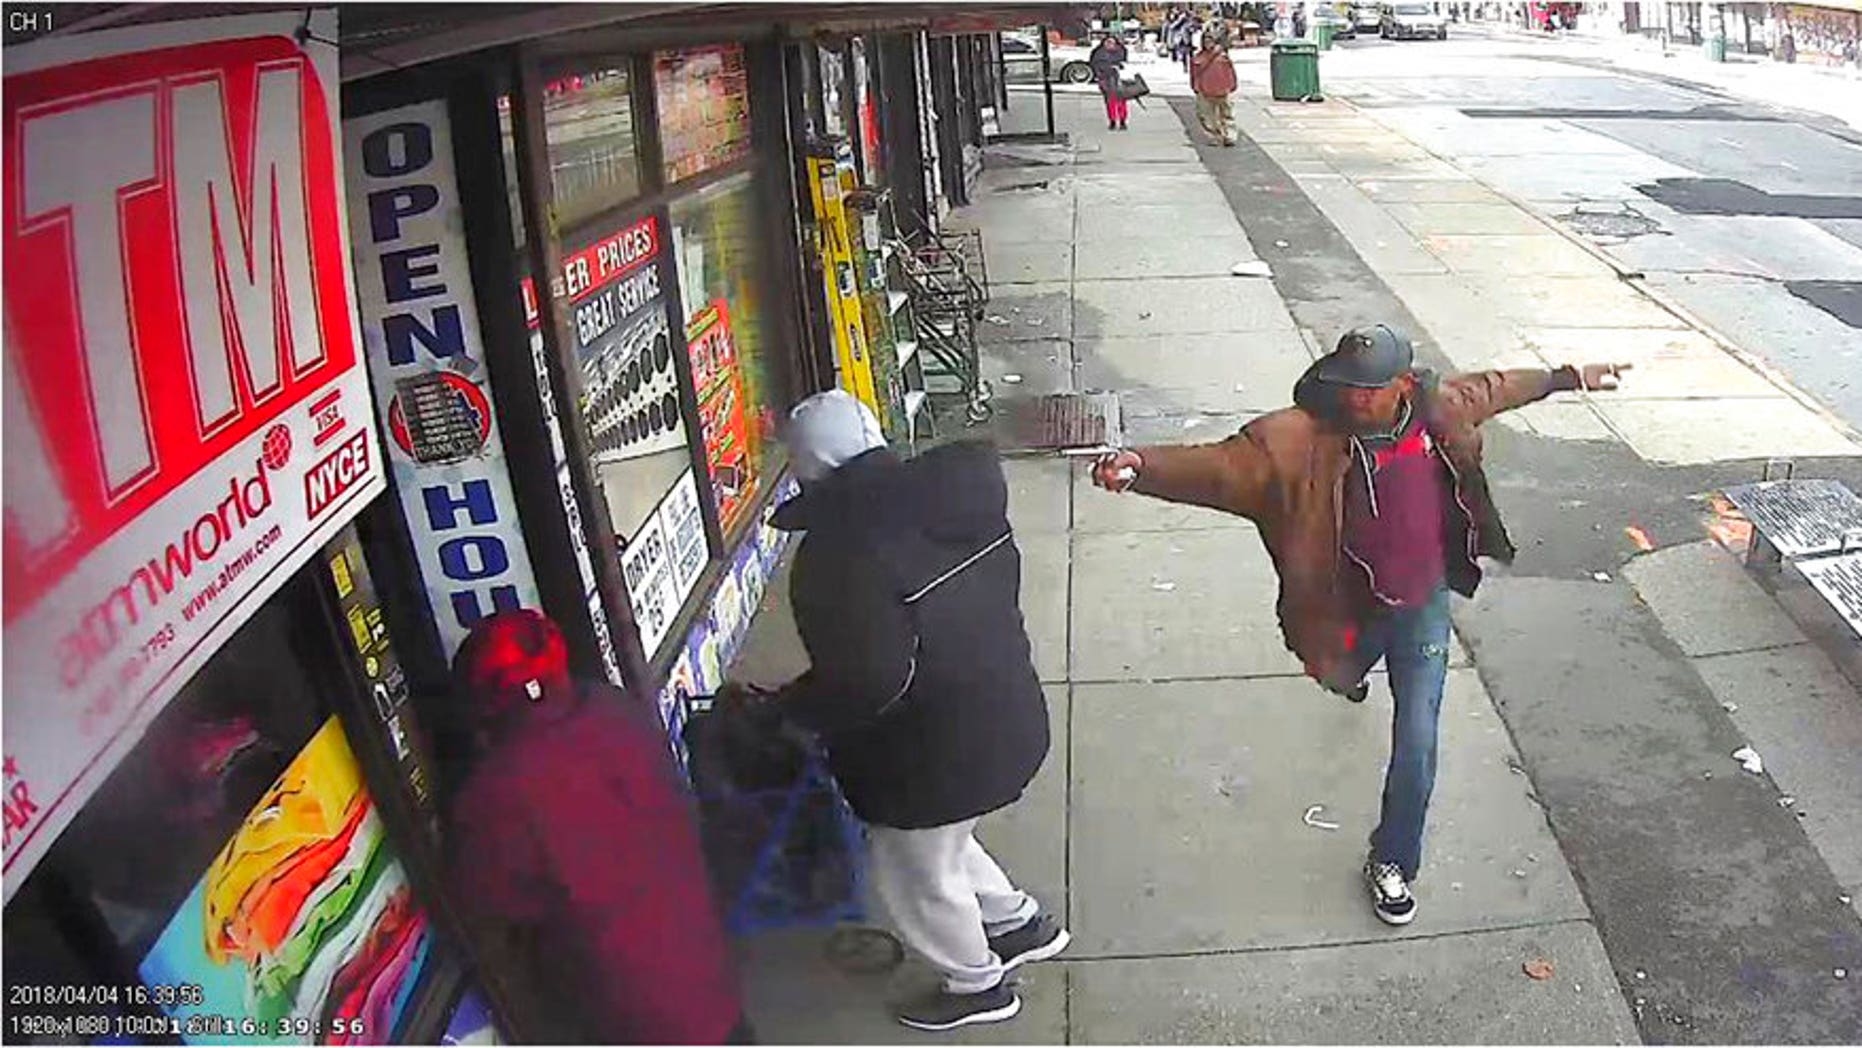 Surveillance video from April 5, 2018, shows Saheed Vassell brandishing a metal object before being fatally shot by police.